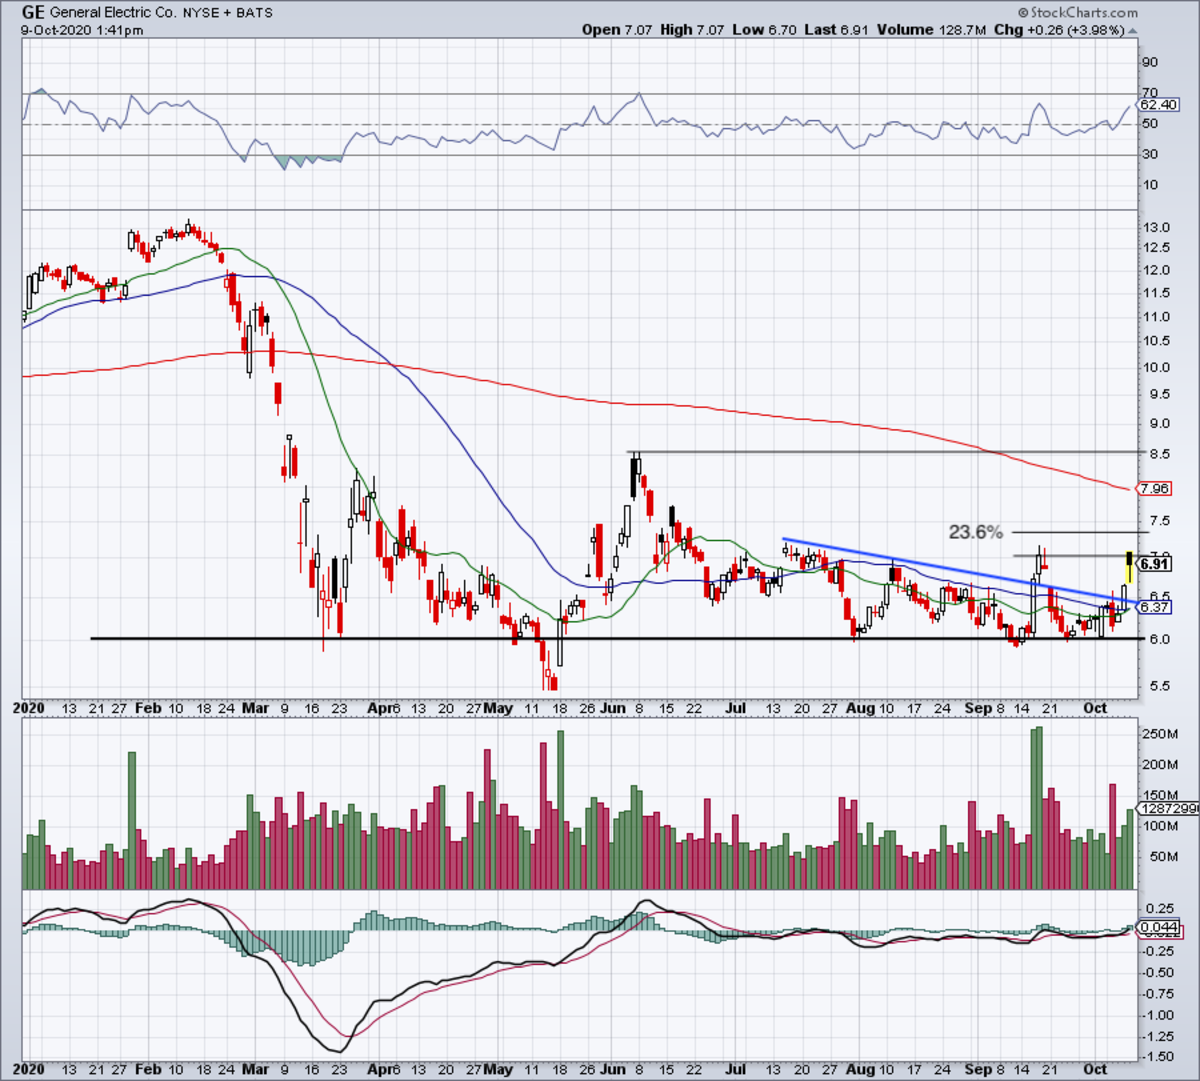 Daily chart of GE stock.